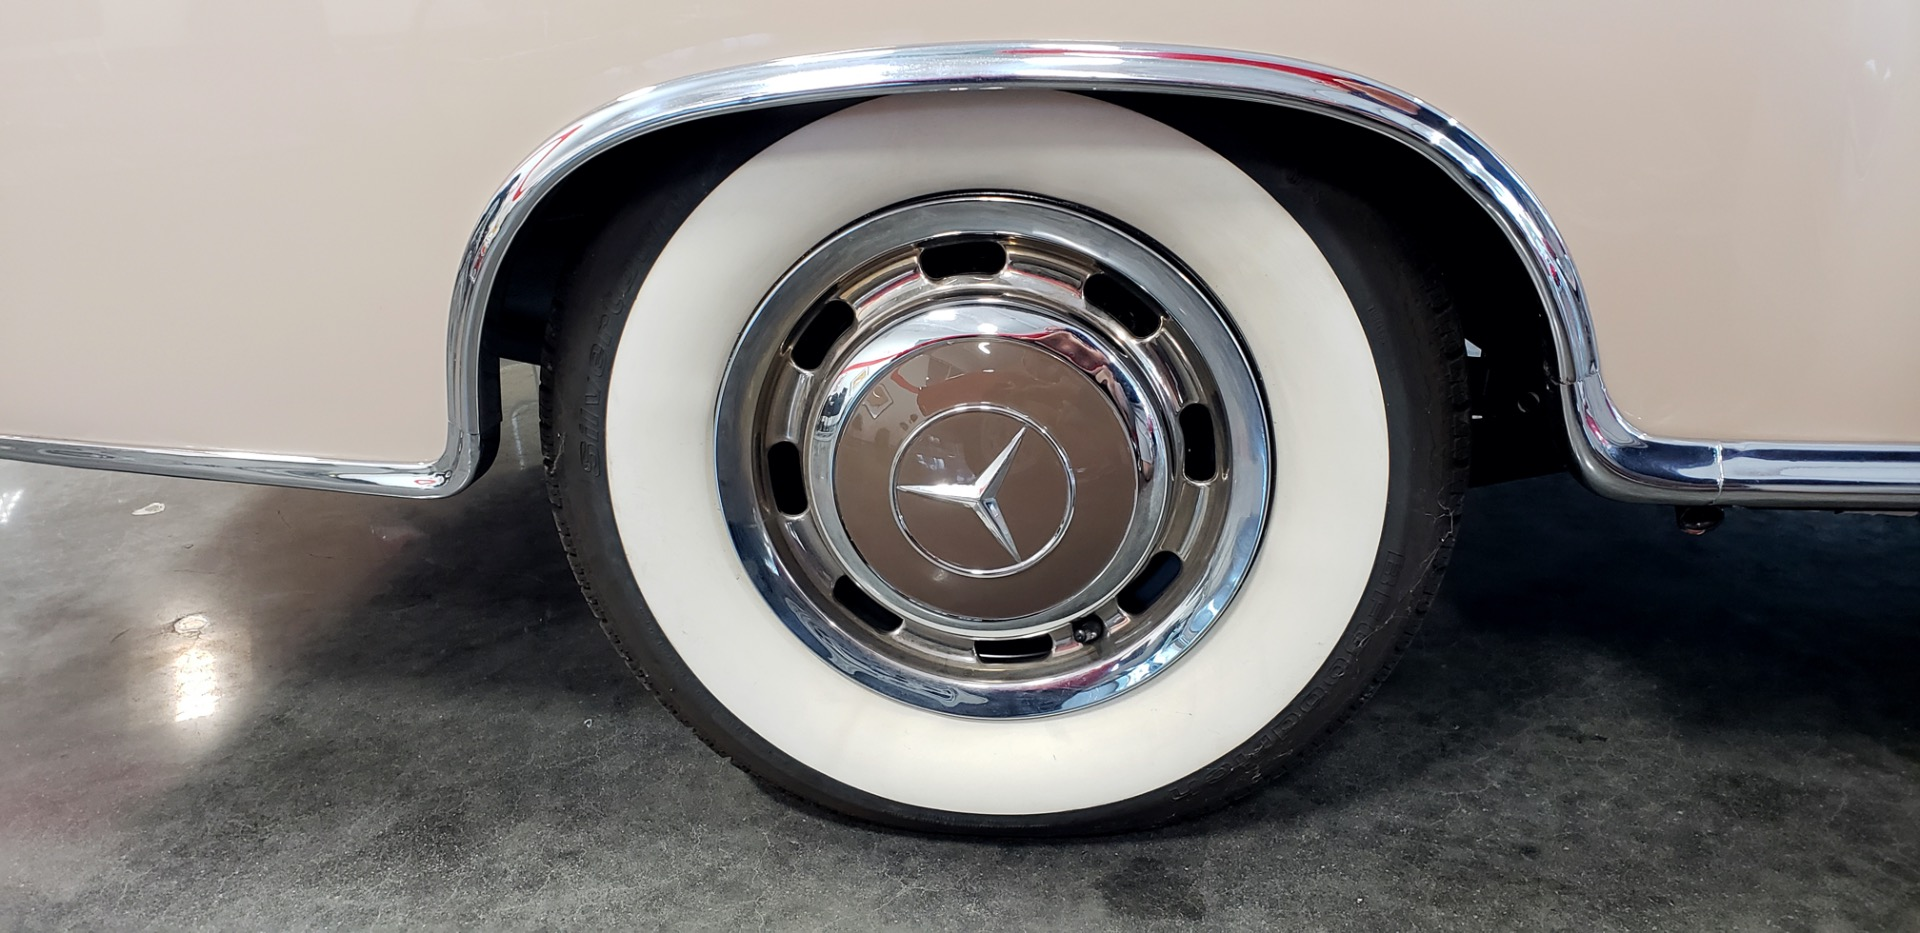 Used 1957 Mercedes-Benz 220 S Cabriolet - Full Restoration for sale Sold at Formula Imports in Charlotte NC 28227 12